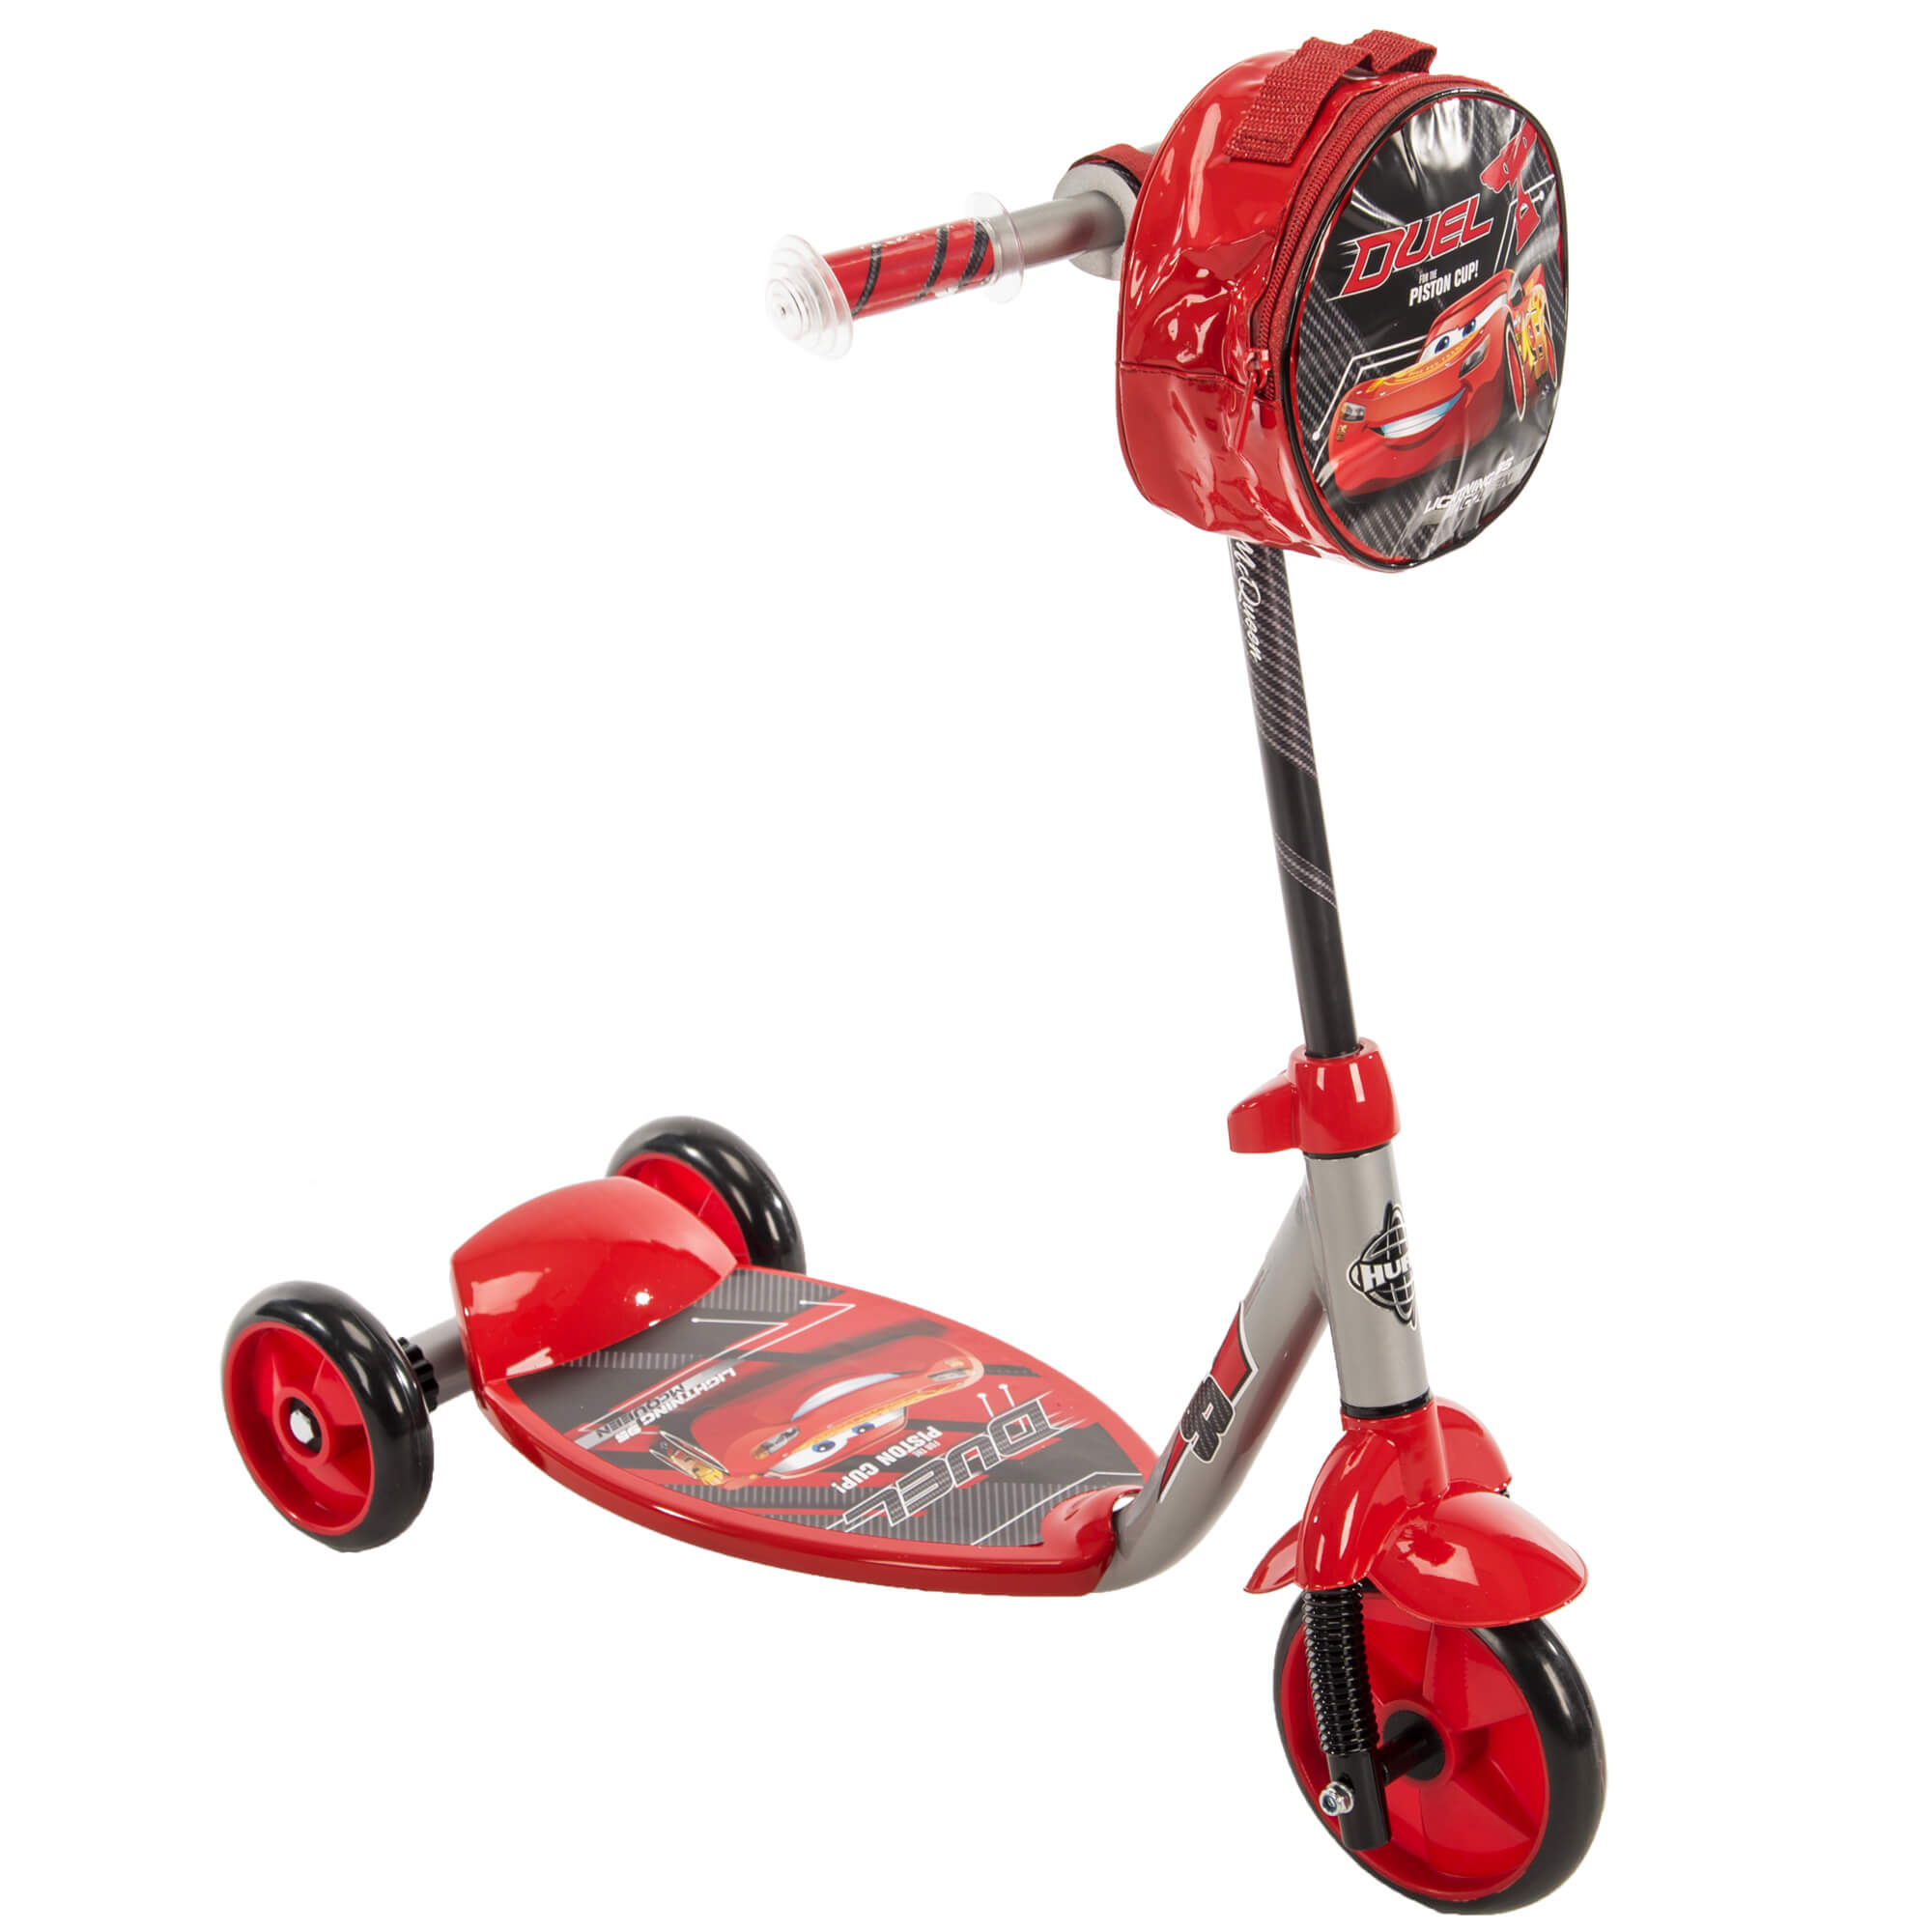 Disney Pixar Cars 3 Boys 3-Wheel Preschool Scooter, by Huffy by Huffy